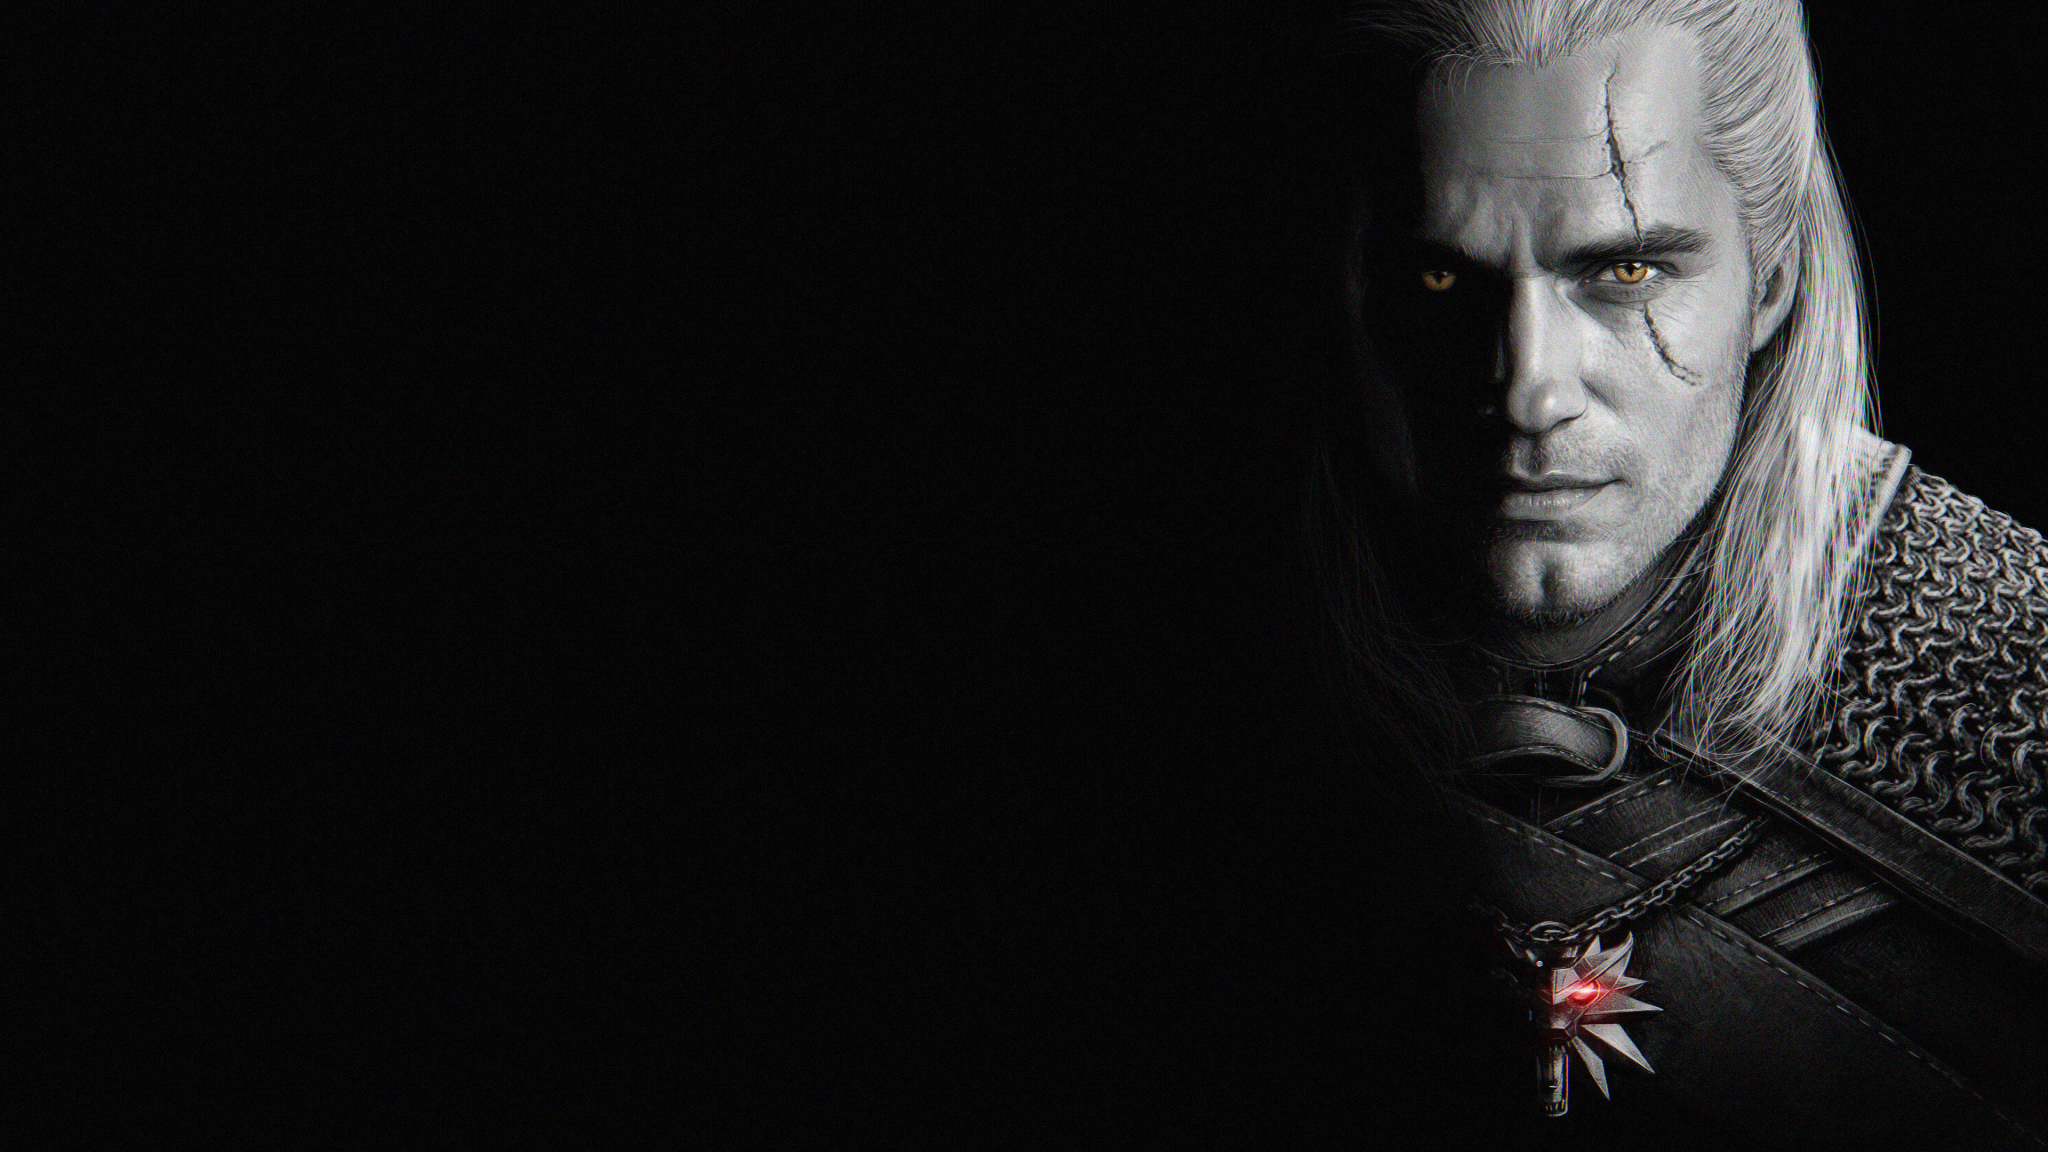 2048x1152 Henry Cavill As Geralt Of Rivia 2048x1152